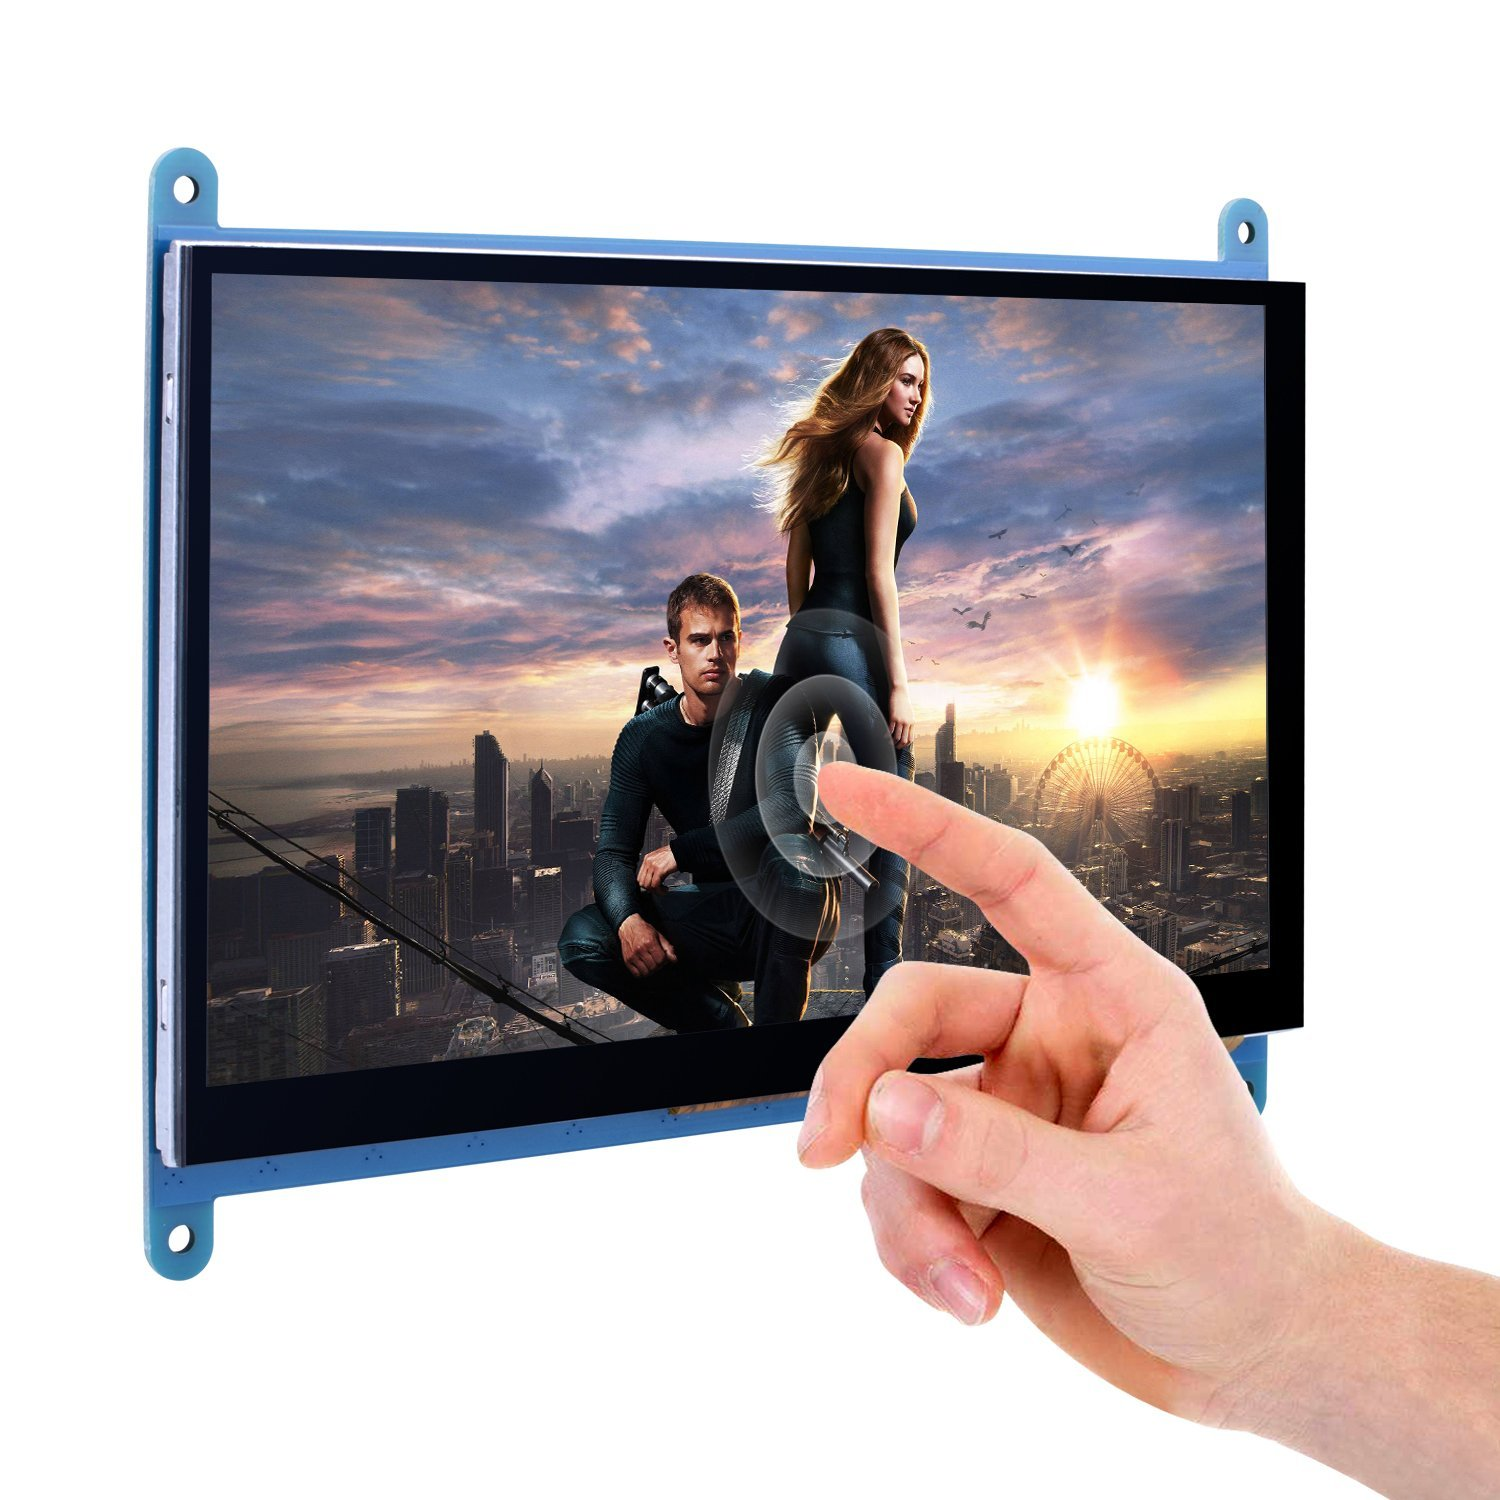 7 Inch Capacitive Touch Screen TFT LCD Display HDMI Module 800x480 for Raspberry Pi 3 2